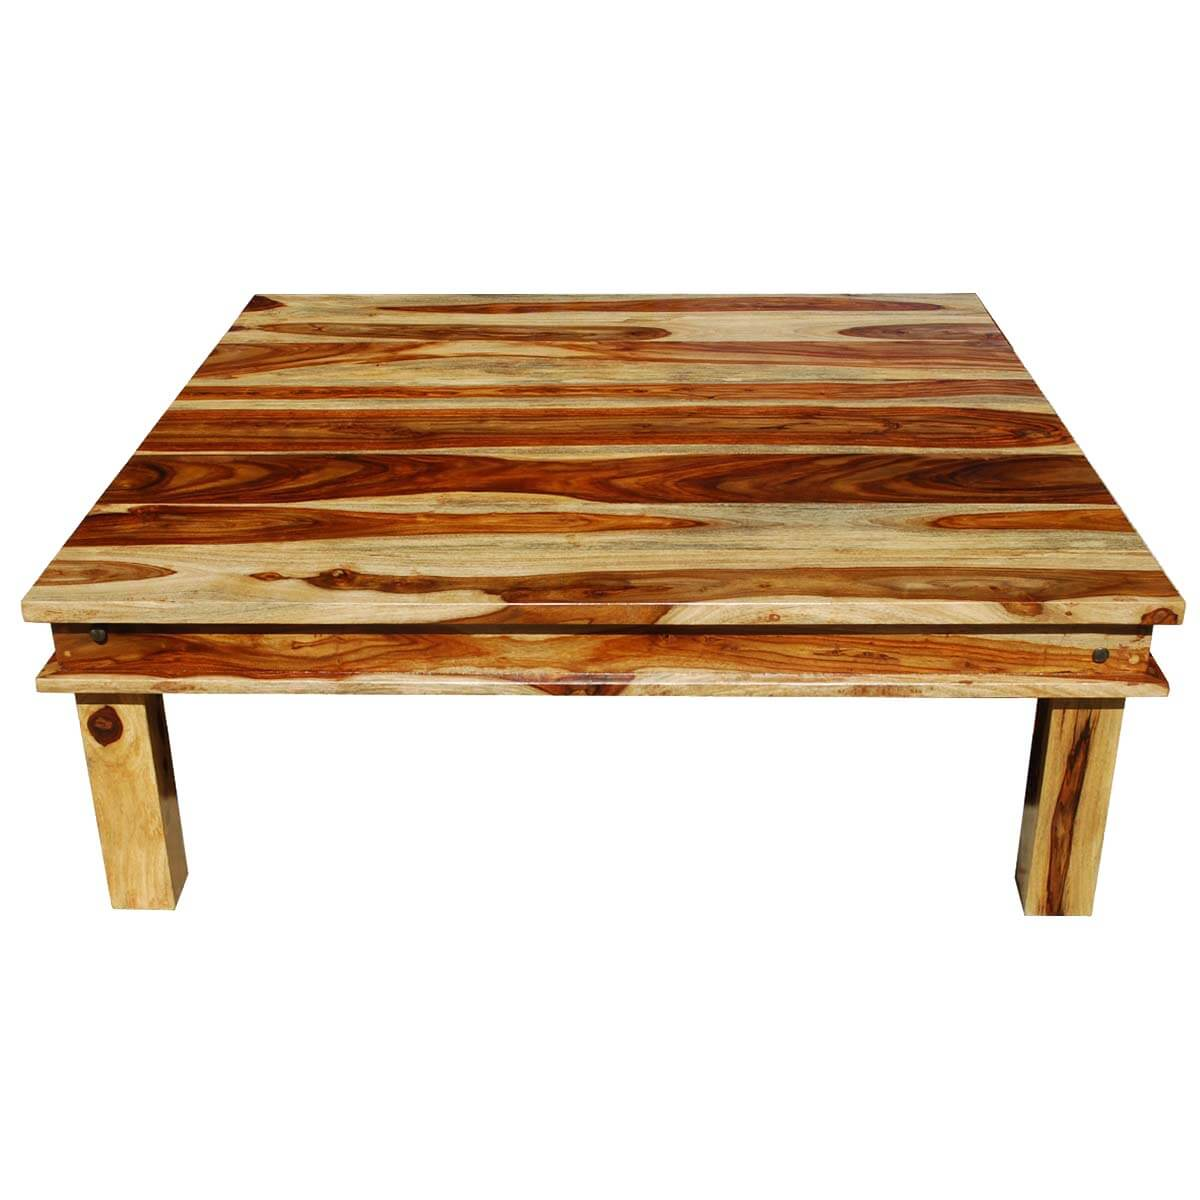 Large square wood rustic coffee table Rustic wooden coffee tables